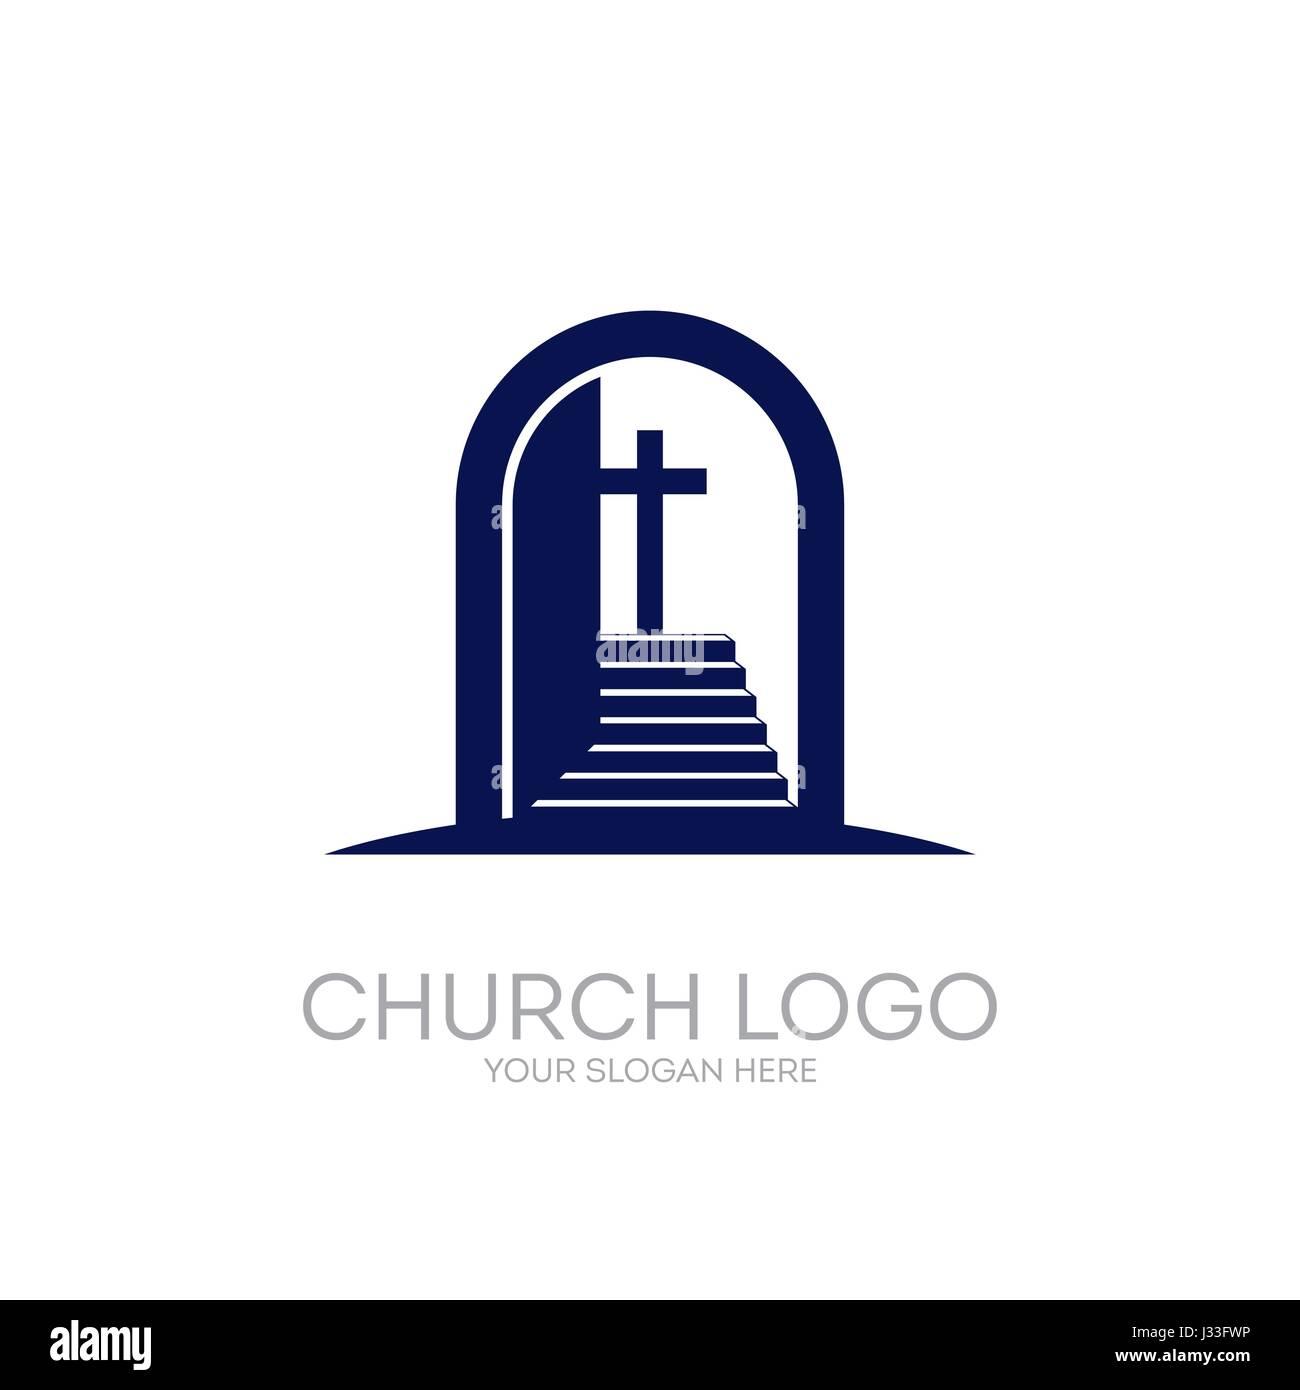 Christian Symbols. Open The Door And The Staircase Leading To The Cross Of  The Lord And Savior Jesus Christ.